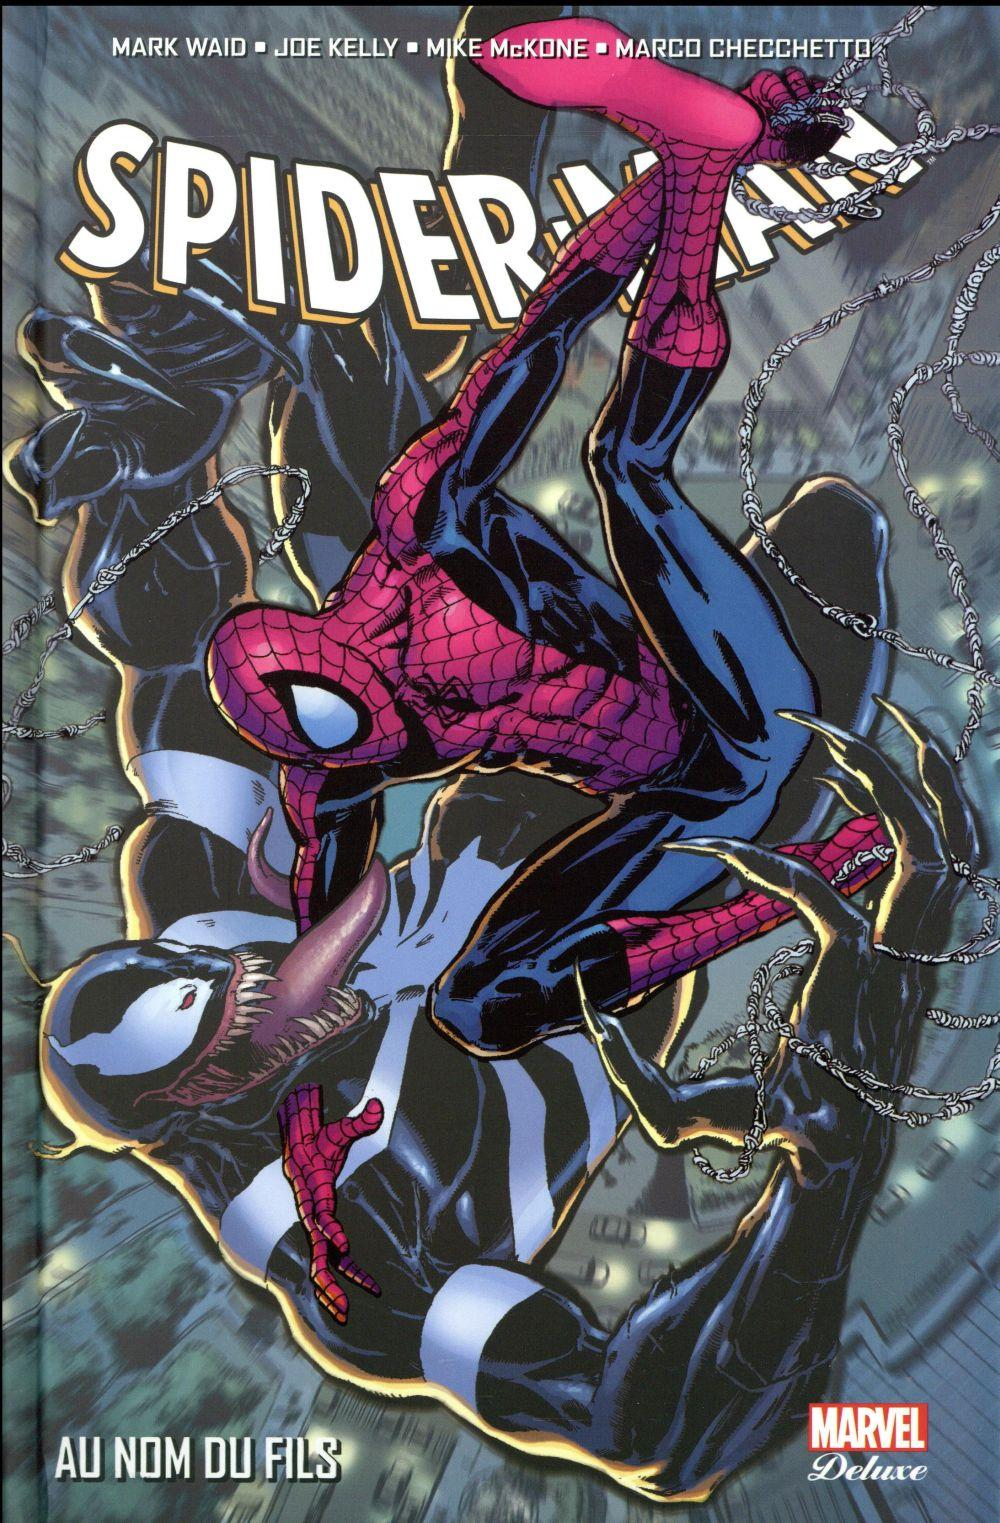 Spider-Man ; au nom du fils  - Marco Checchetto  - Mark Waid  - Joe Kelly  - Mike Mckone